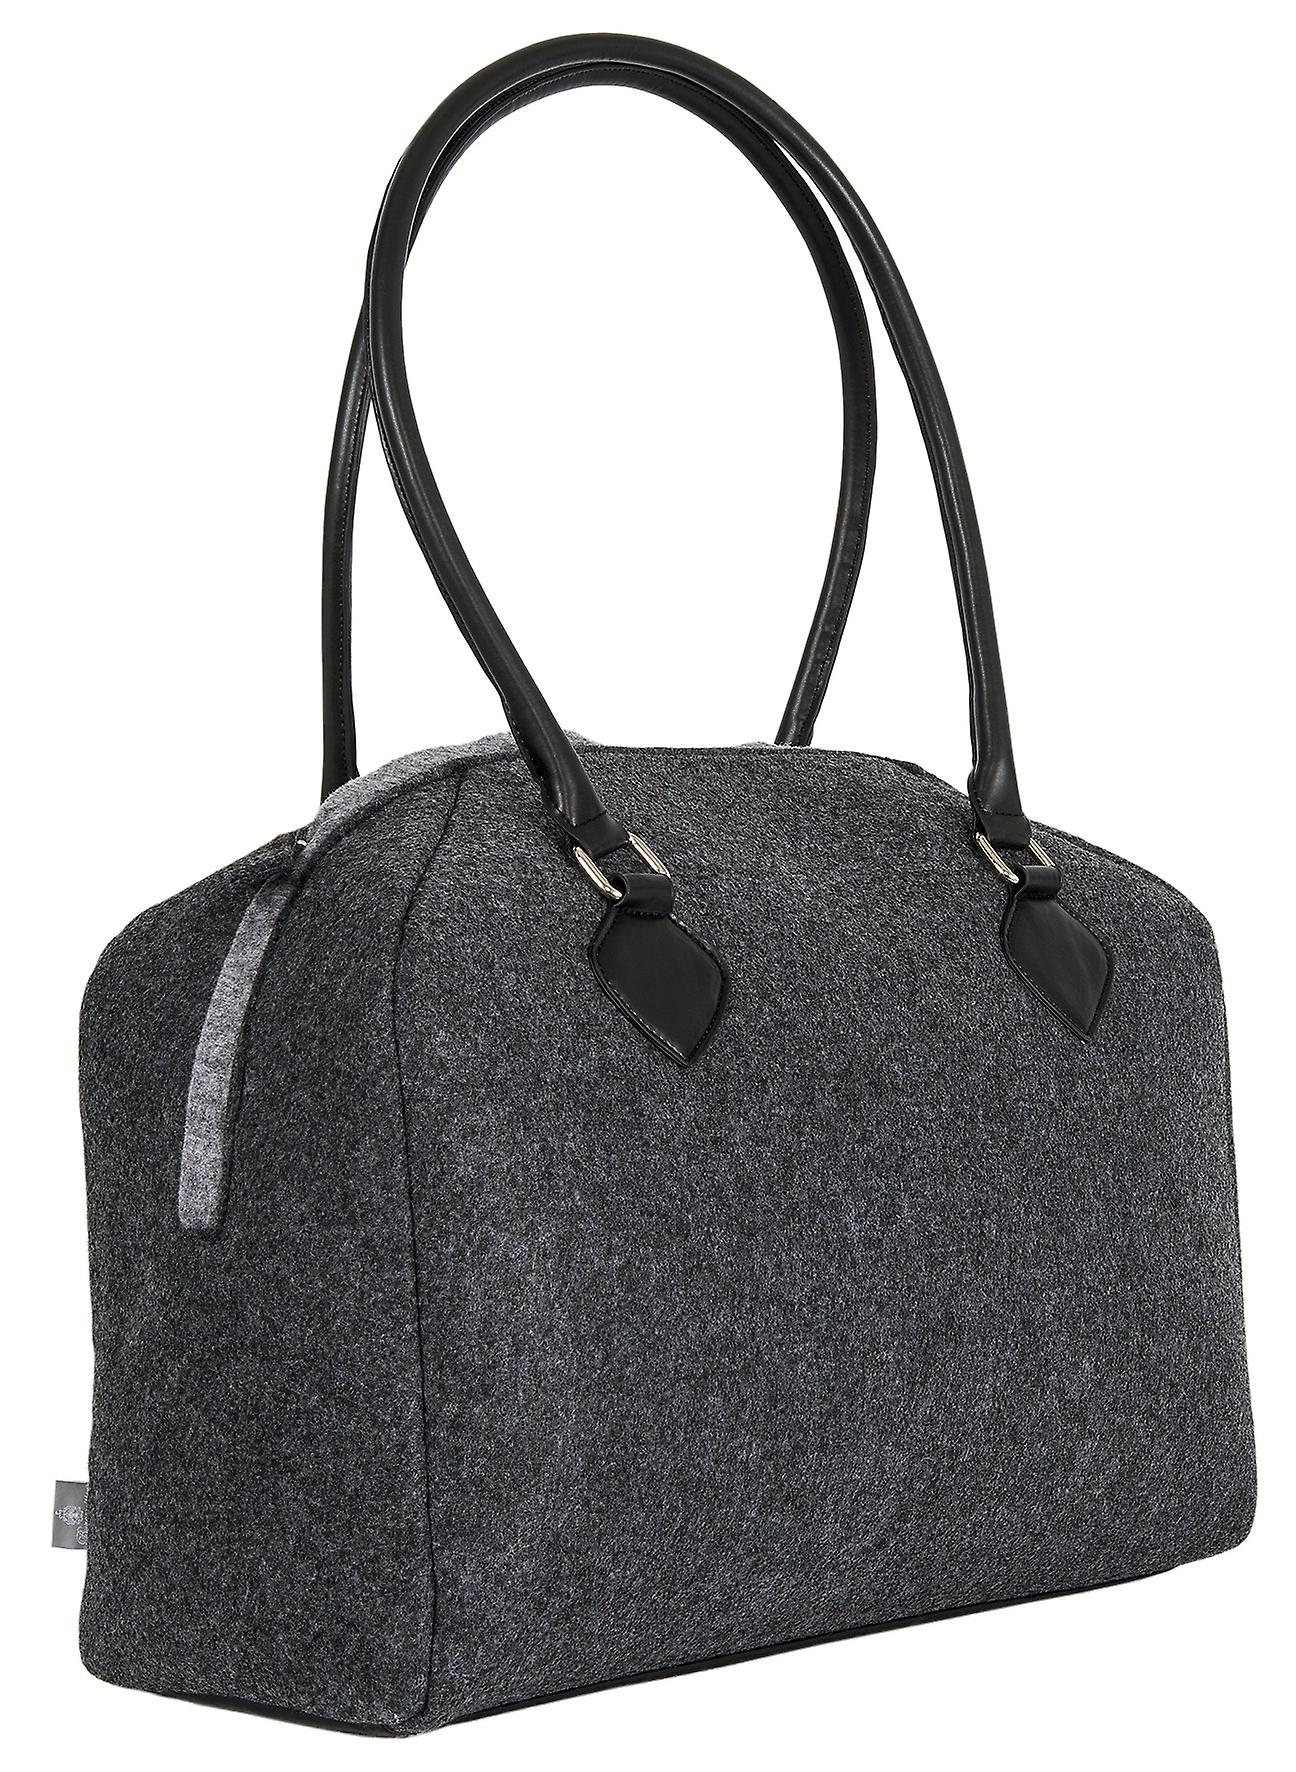 Burgmeister ladies/gents shoulder bag felt, TBM3027-161